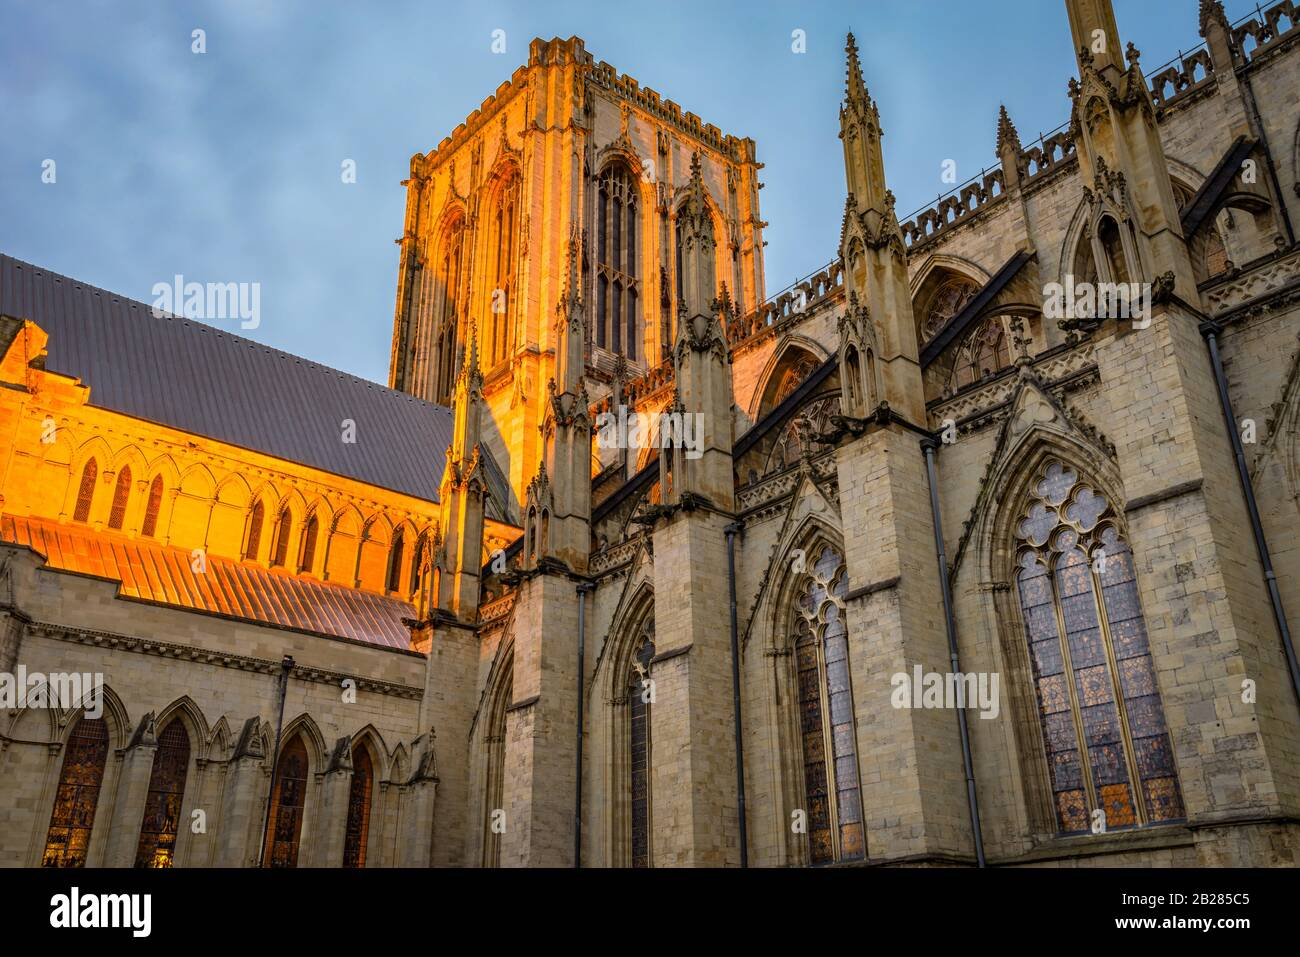 A  illuminated section of York Minster with its medieval gothic architecture and central tower at dawn.  Stained glass windows are lit. Stock Photo